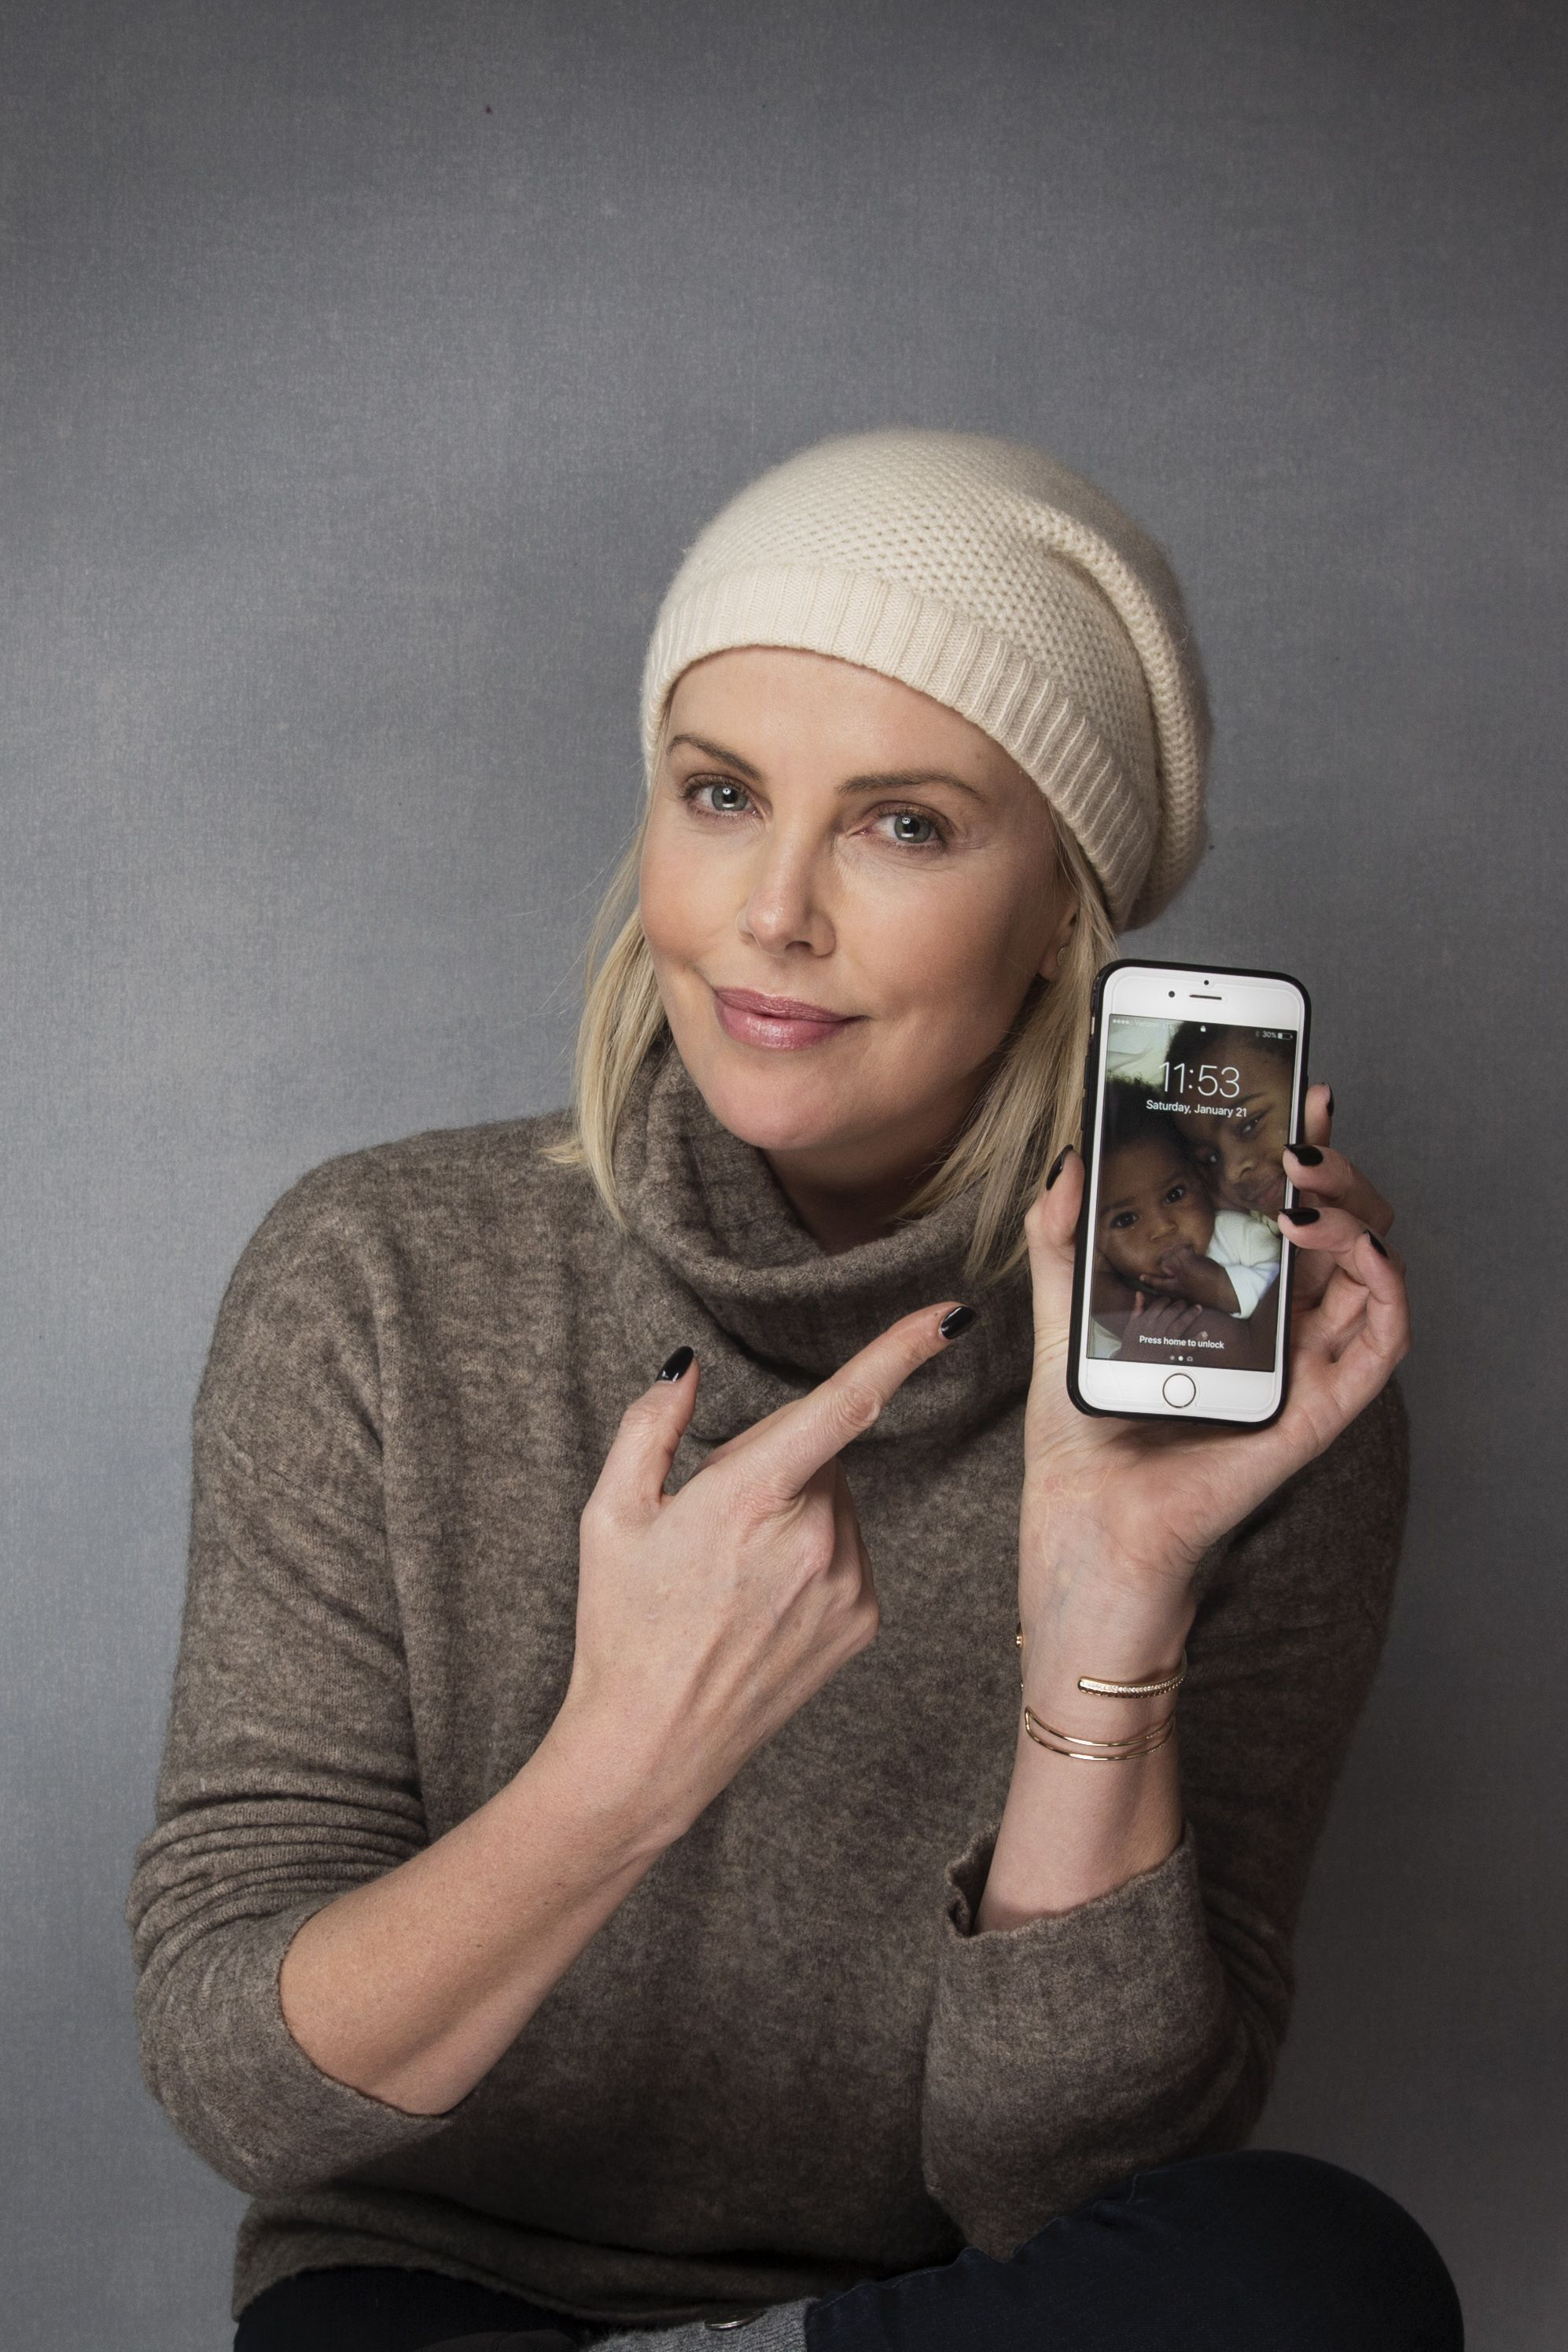 Actress Charlize Theron points to a photo of her children, August Theron and Jackson Theron as she poses for a portrait to promote Women's March on Main at the Music Lodge during the Sundance Film Festival, in Park City, UtahAPTOPIX 2017 Sundance Film Festival - Women's March on Main Portraits, Park City, USA - 21 Jan 2017